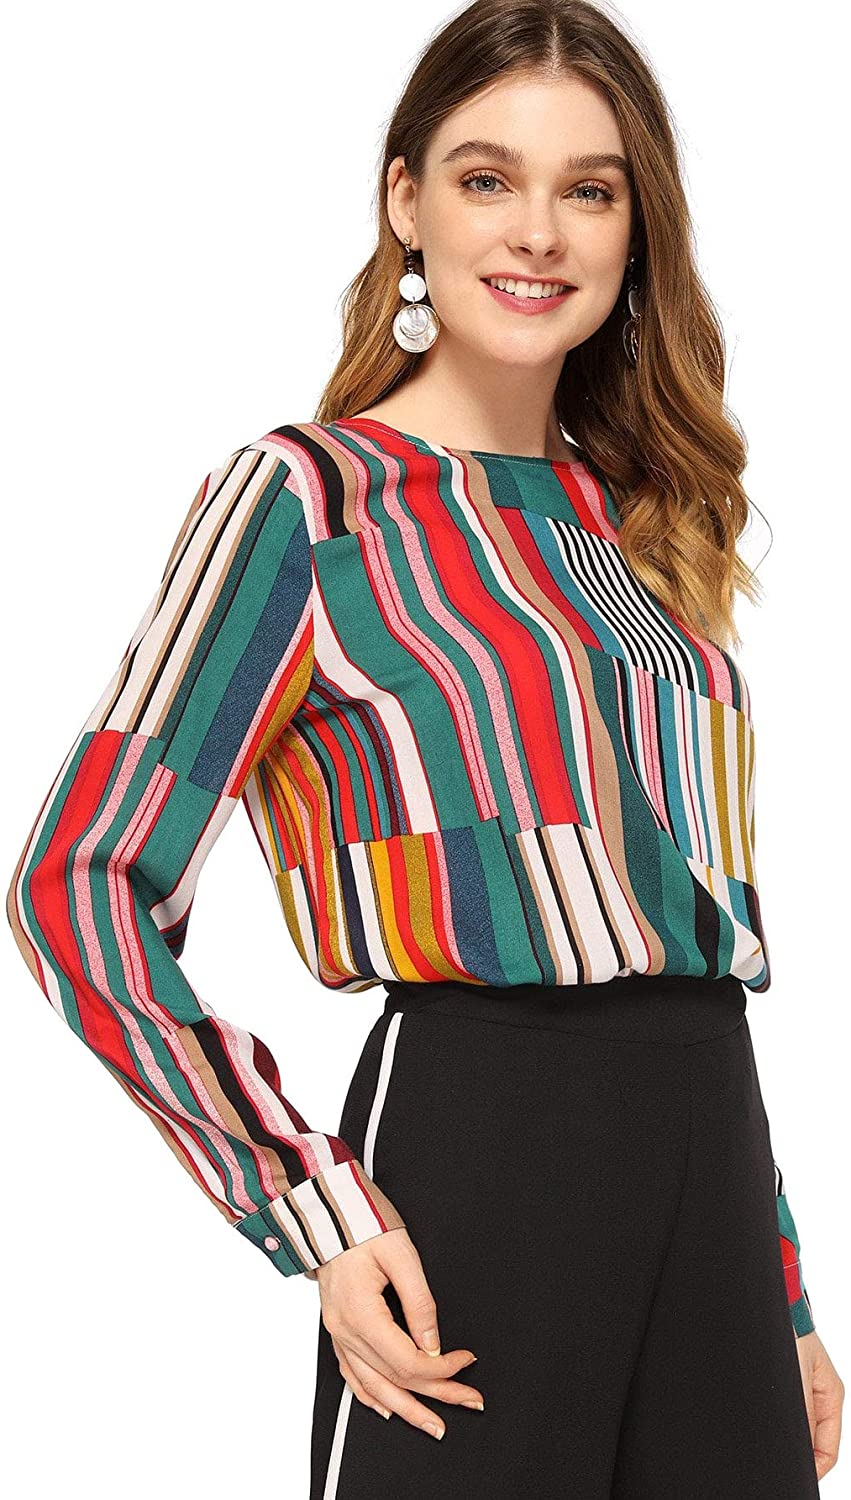 SheIn Women's Casual Long Sleeve Round Neck Tops Mixed Striped Blouse